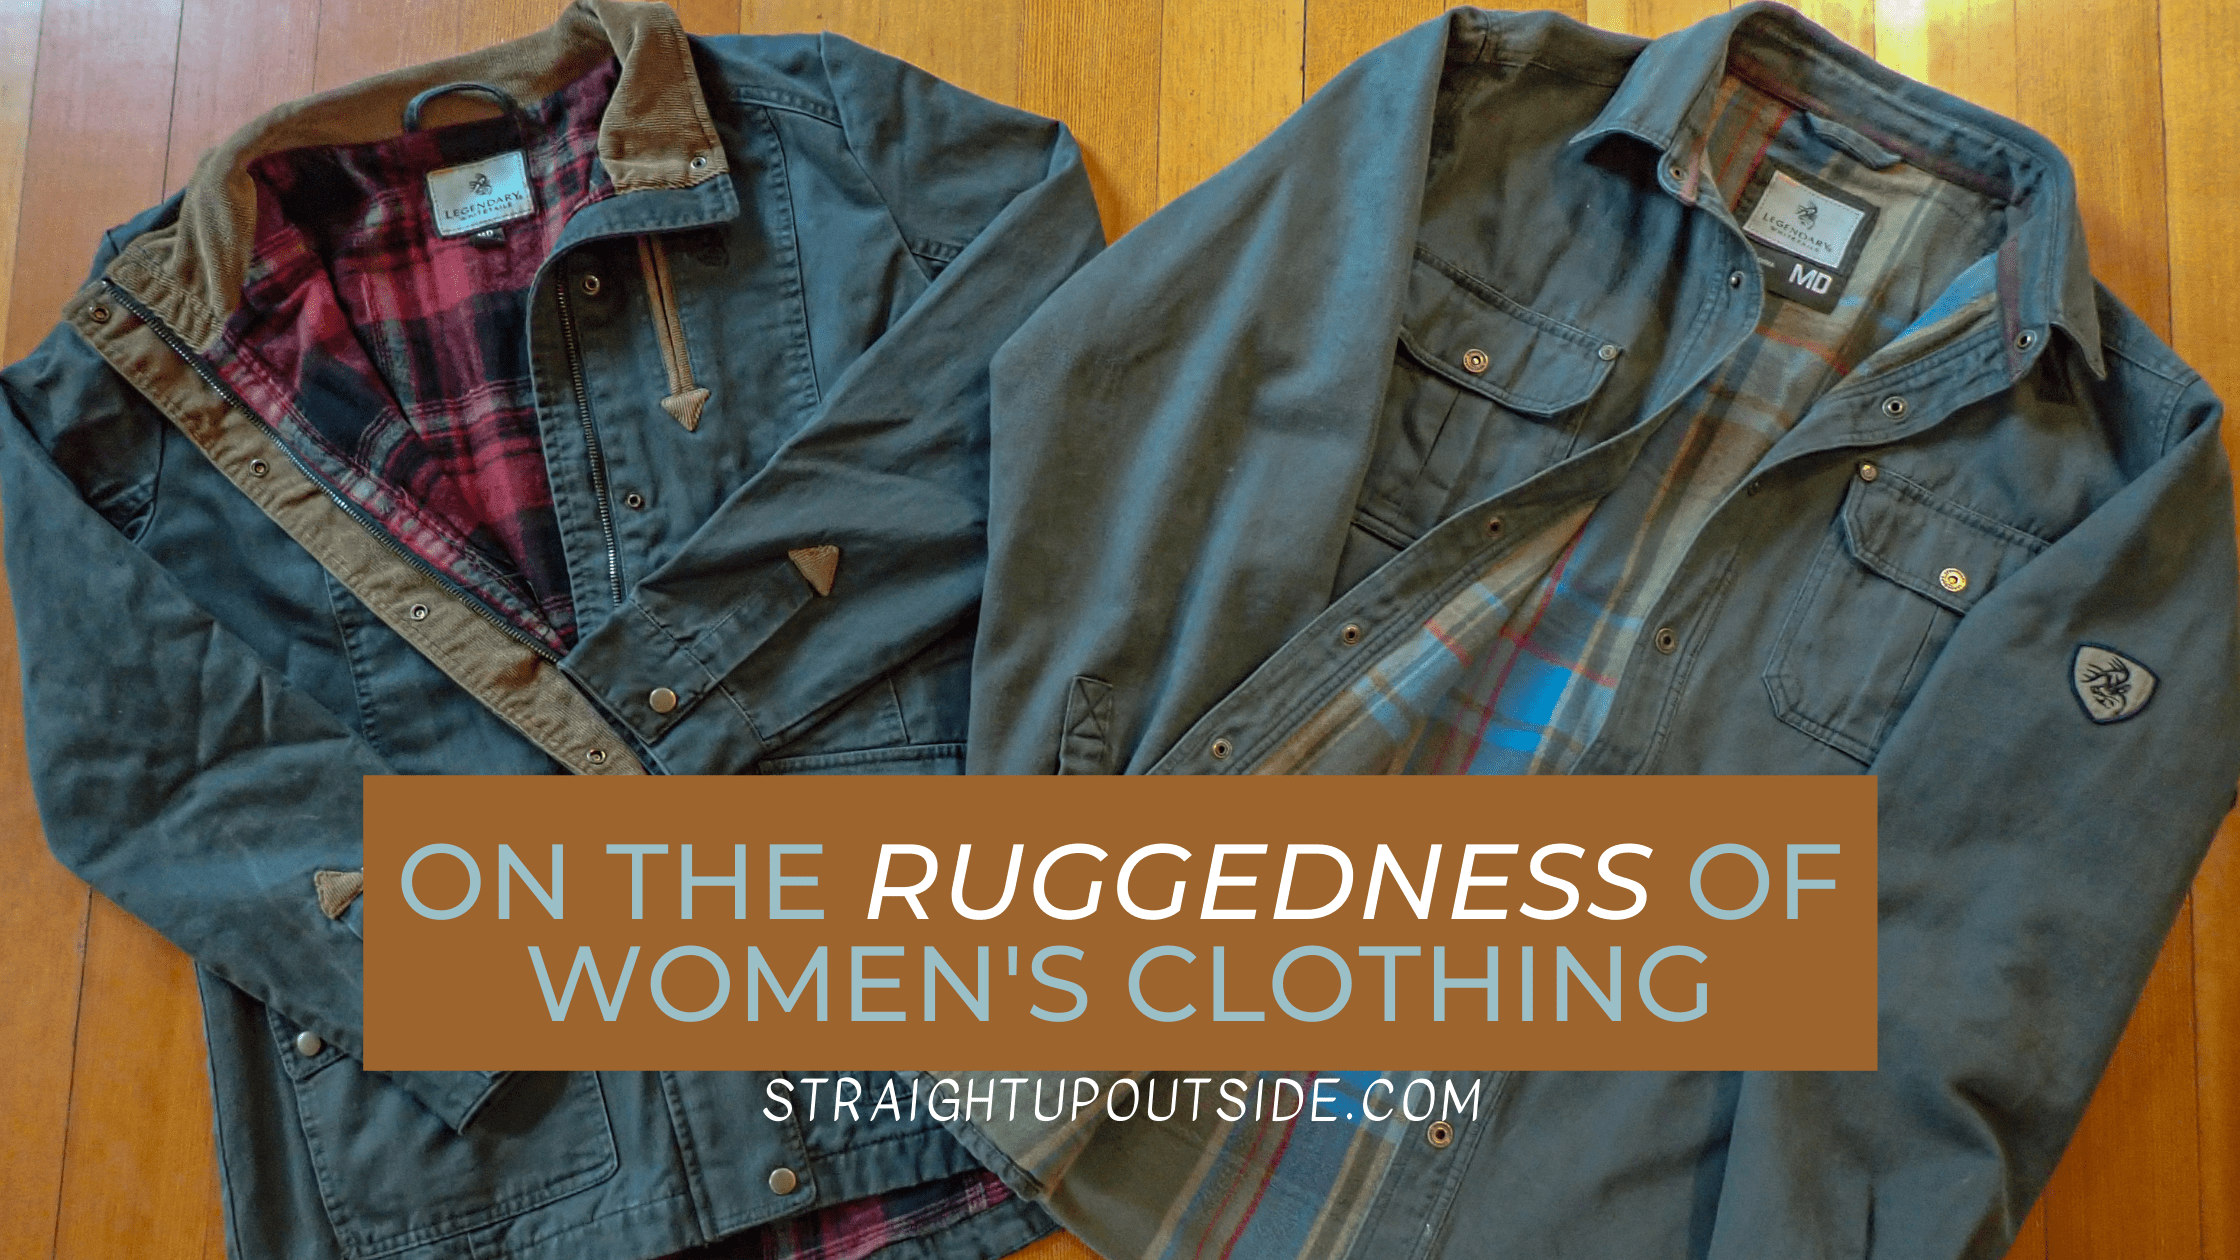 On the Ruggedness of Women's Clothing